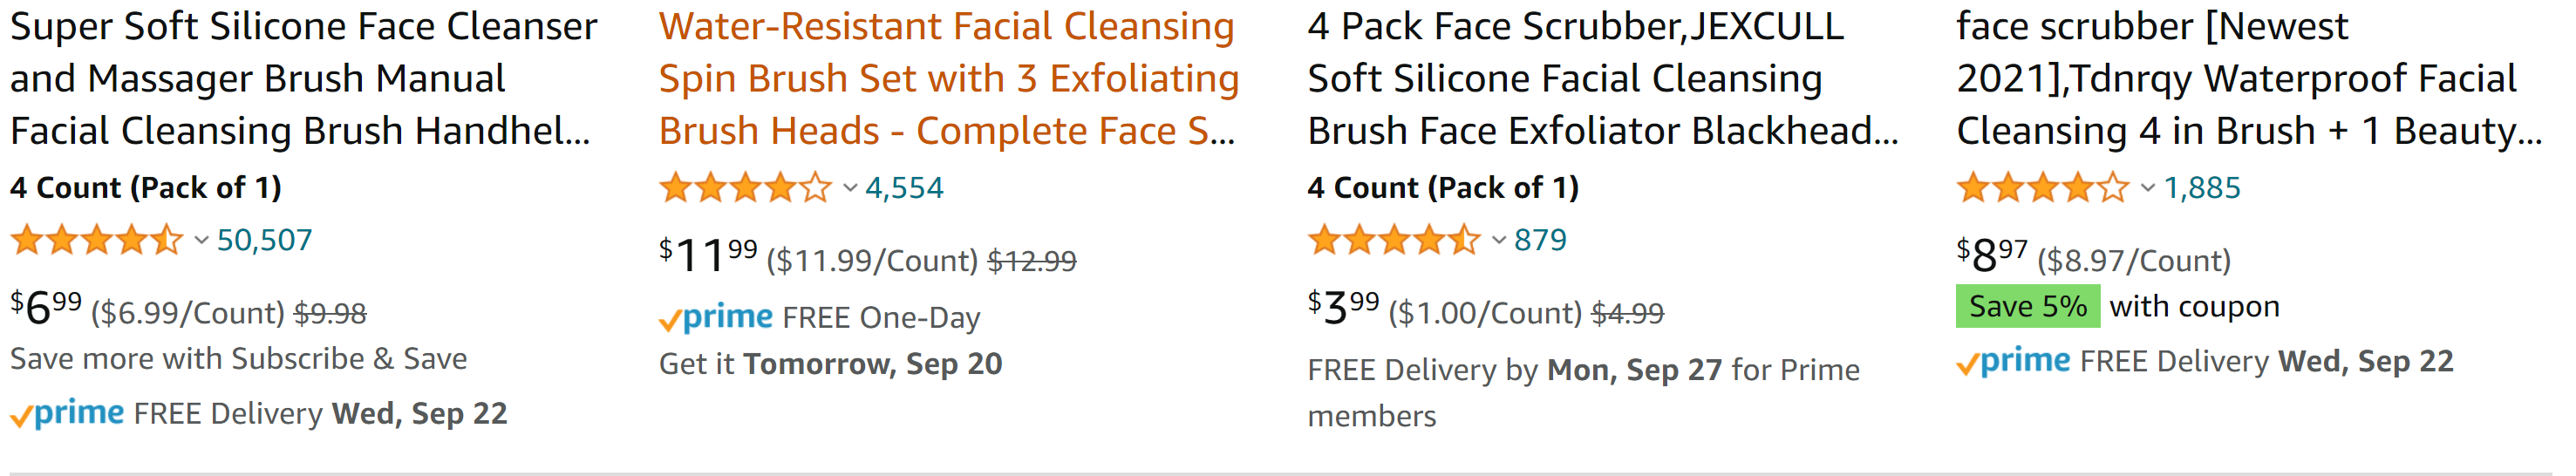 face scrubber listings